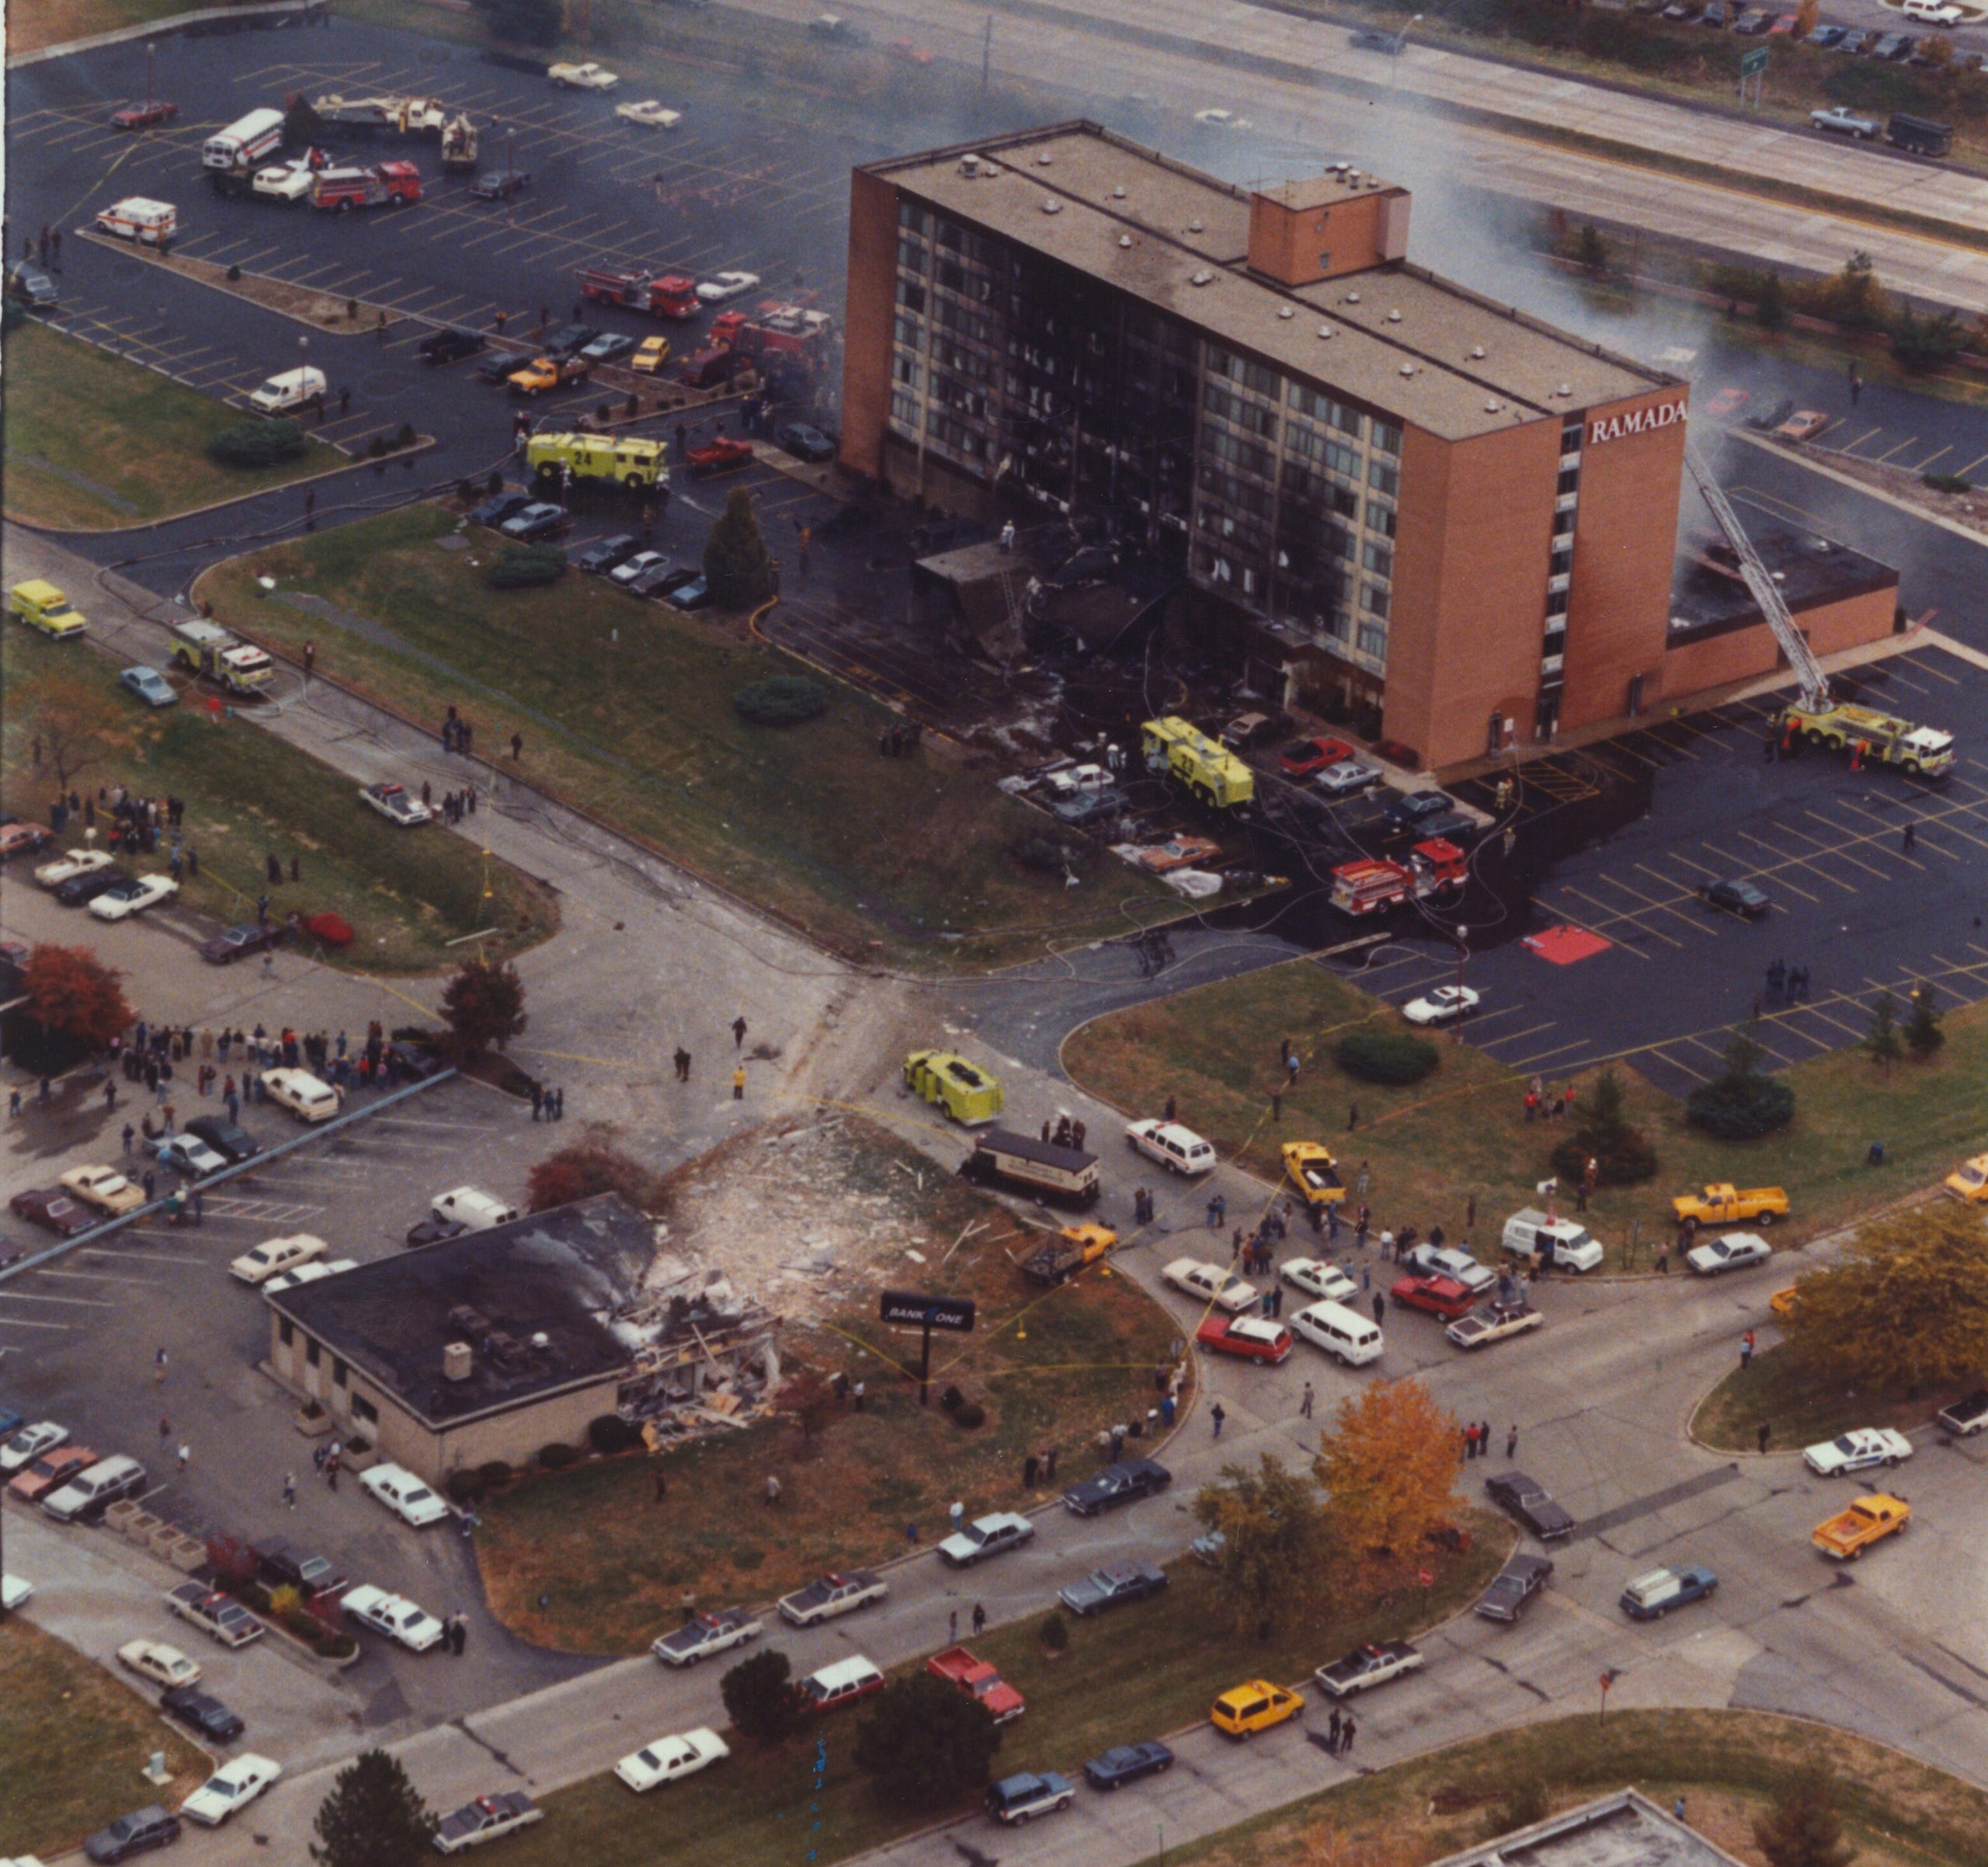 An aerial shot of the destruction caused when a military jet crashed into the Ramada Inn near the Indianapolis International Airport on Oct. 20, 1987. In the foreground is the Bank One branch where the jet bounced off the roof.